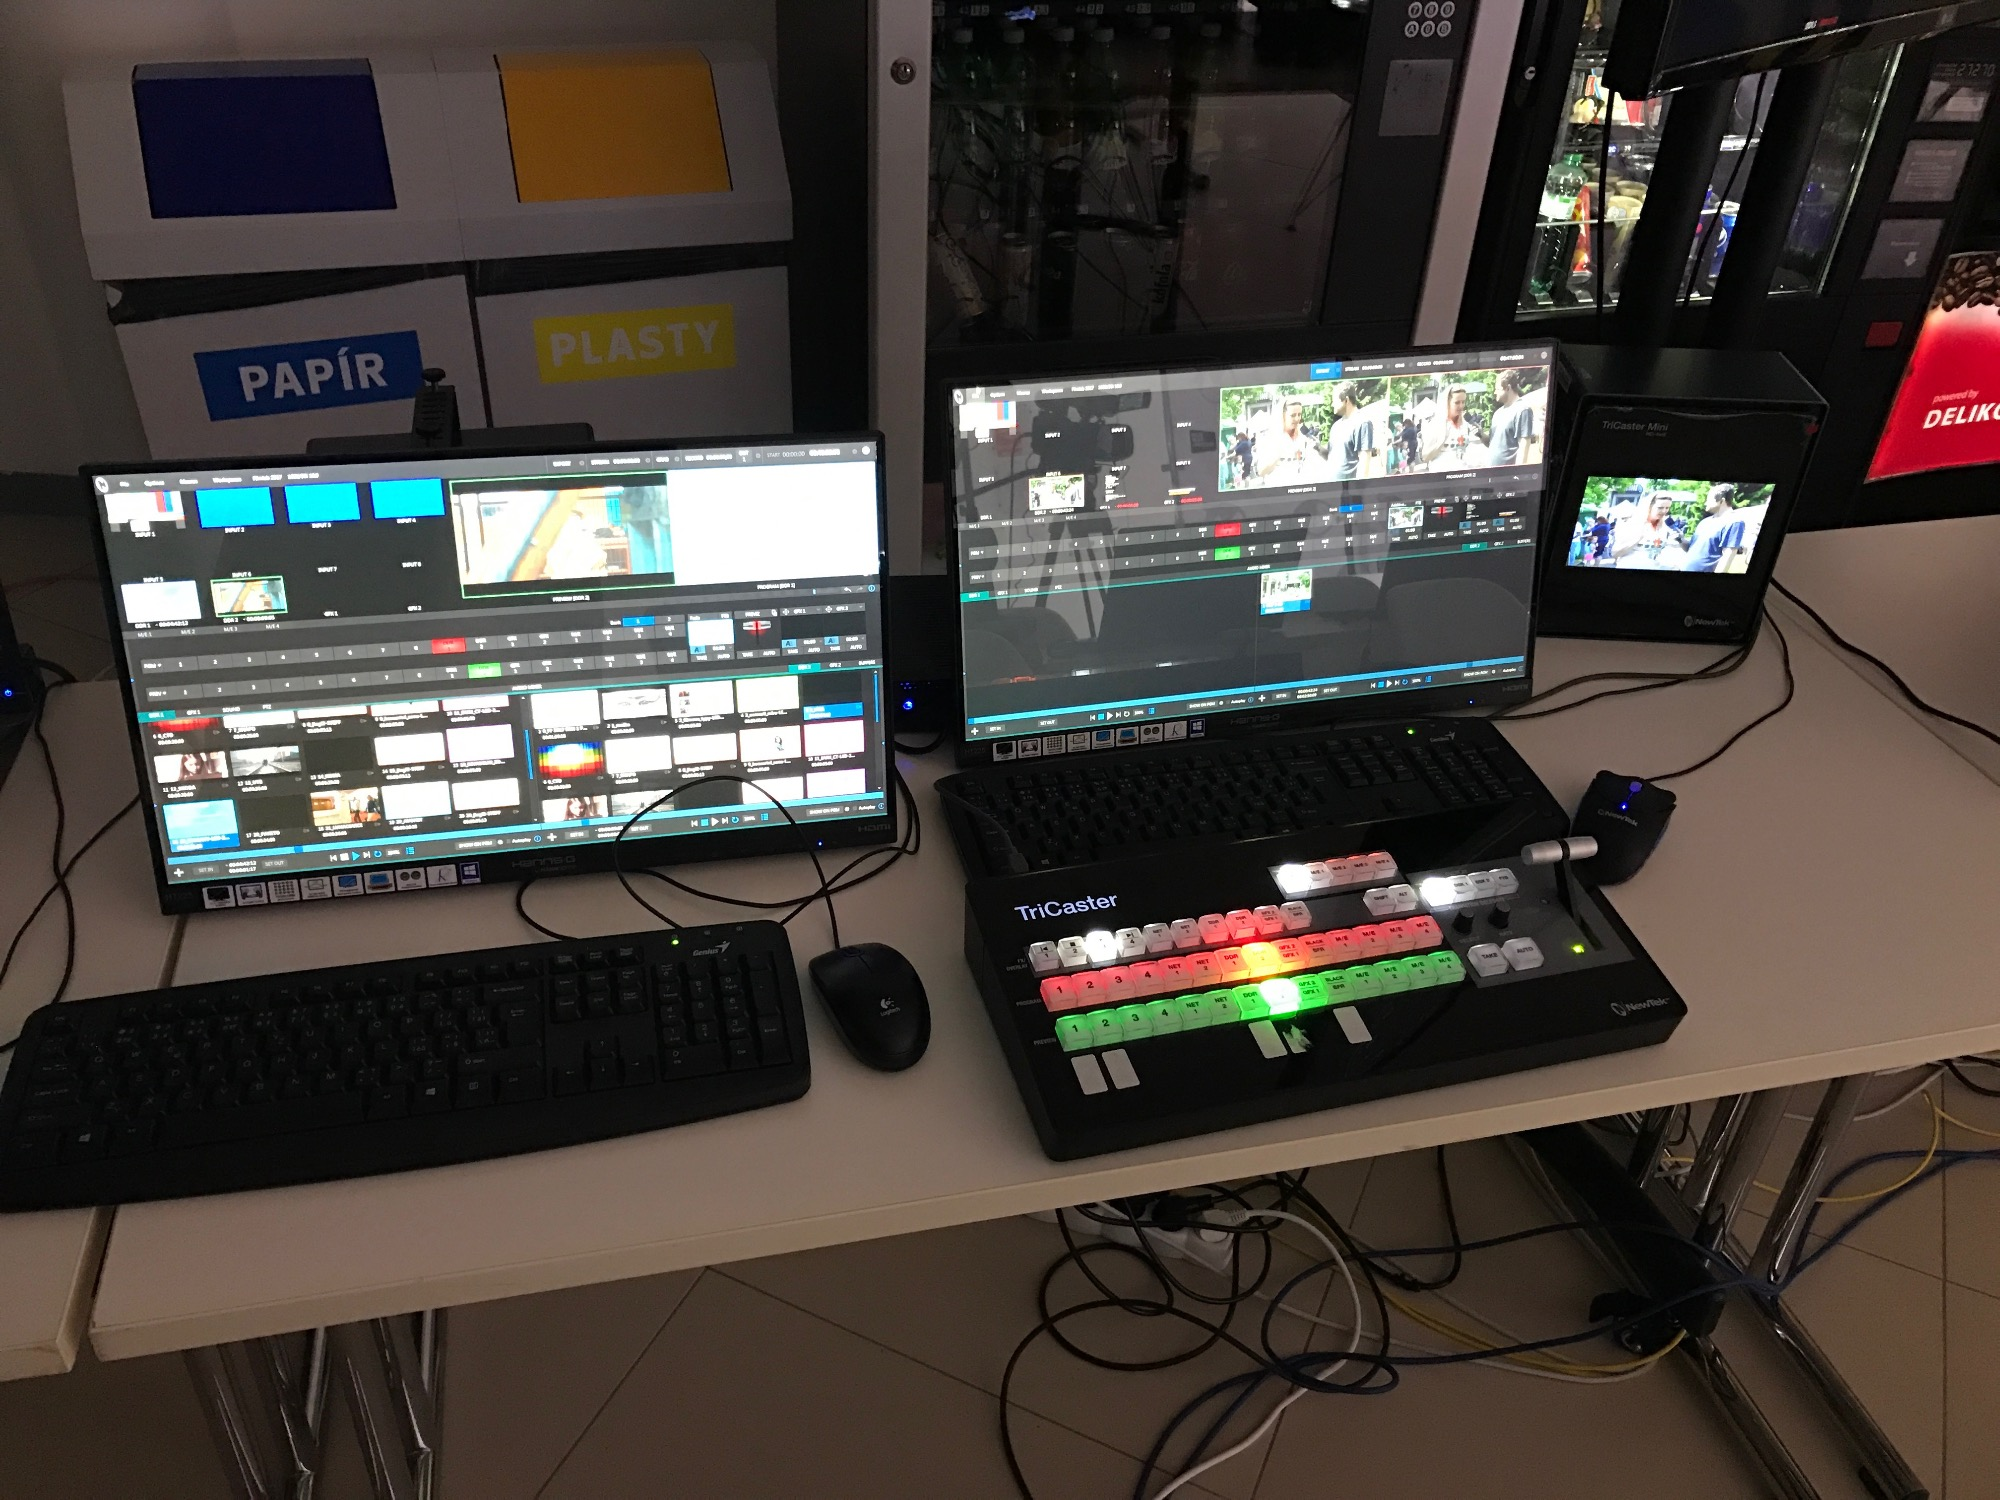 UI Monitor and keyboard for TriCaster Mini SDI on left, UI Monitor, Control Surface and TriCaster Mini HDMI model on the right.